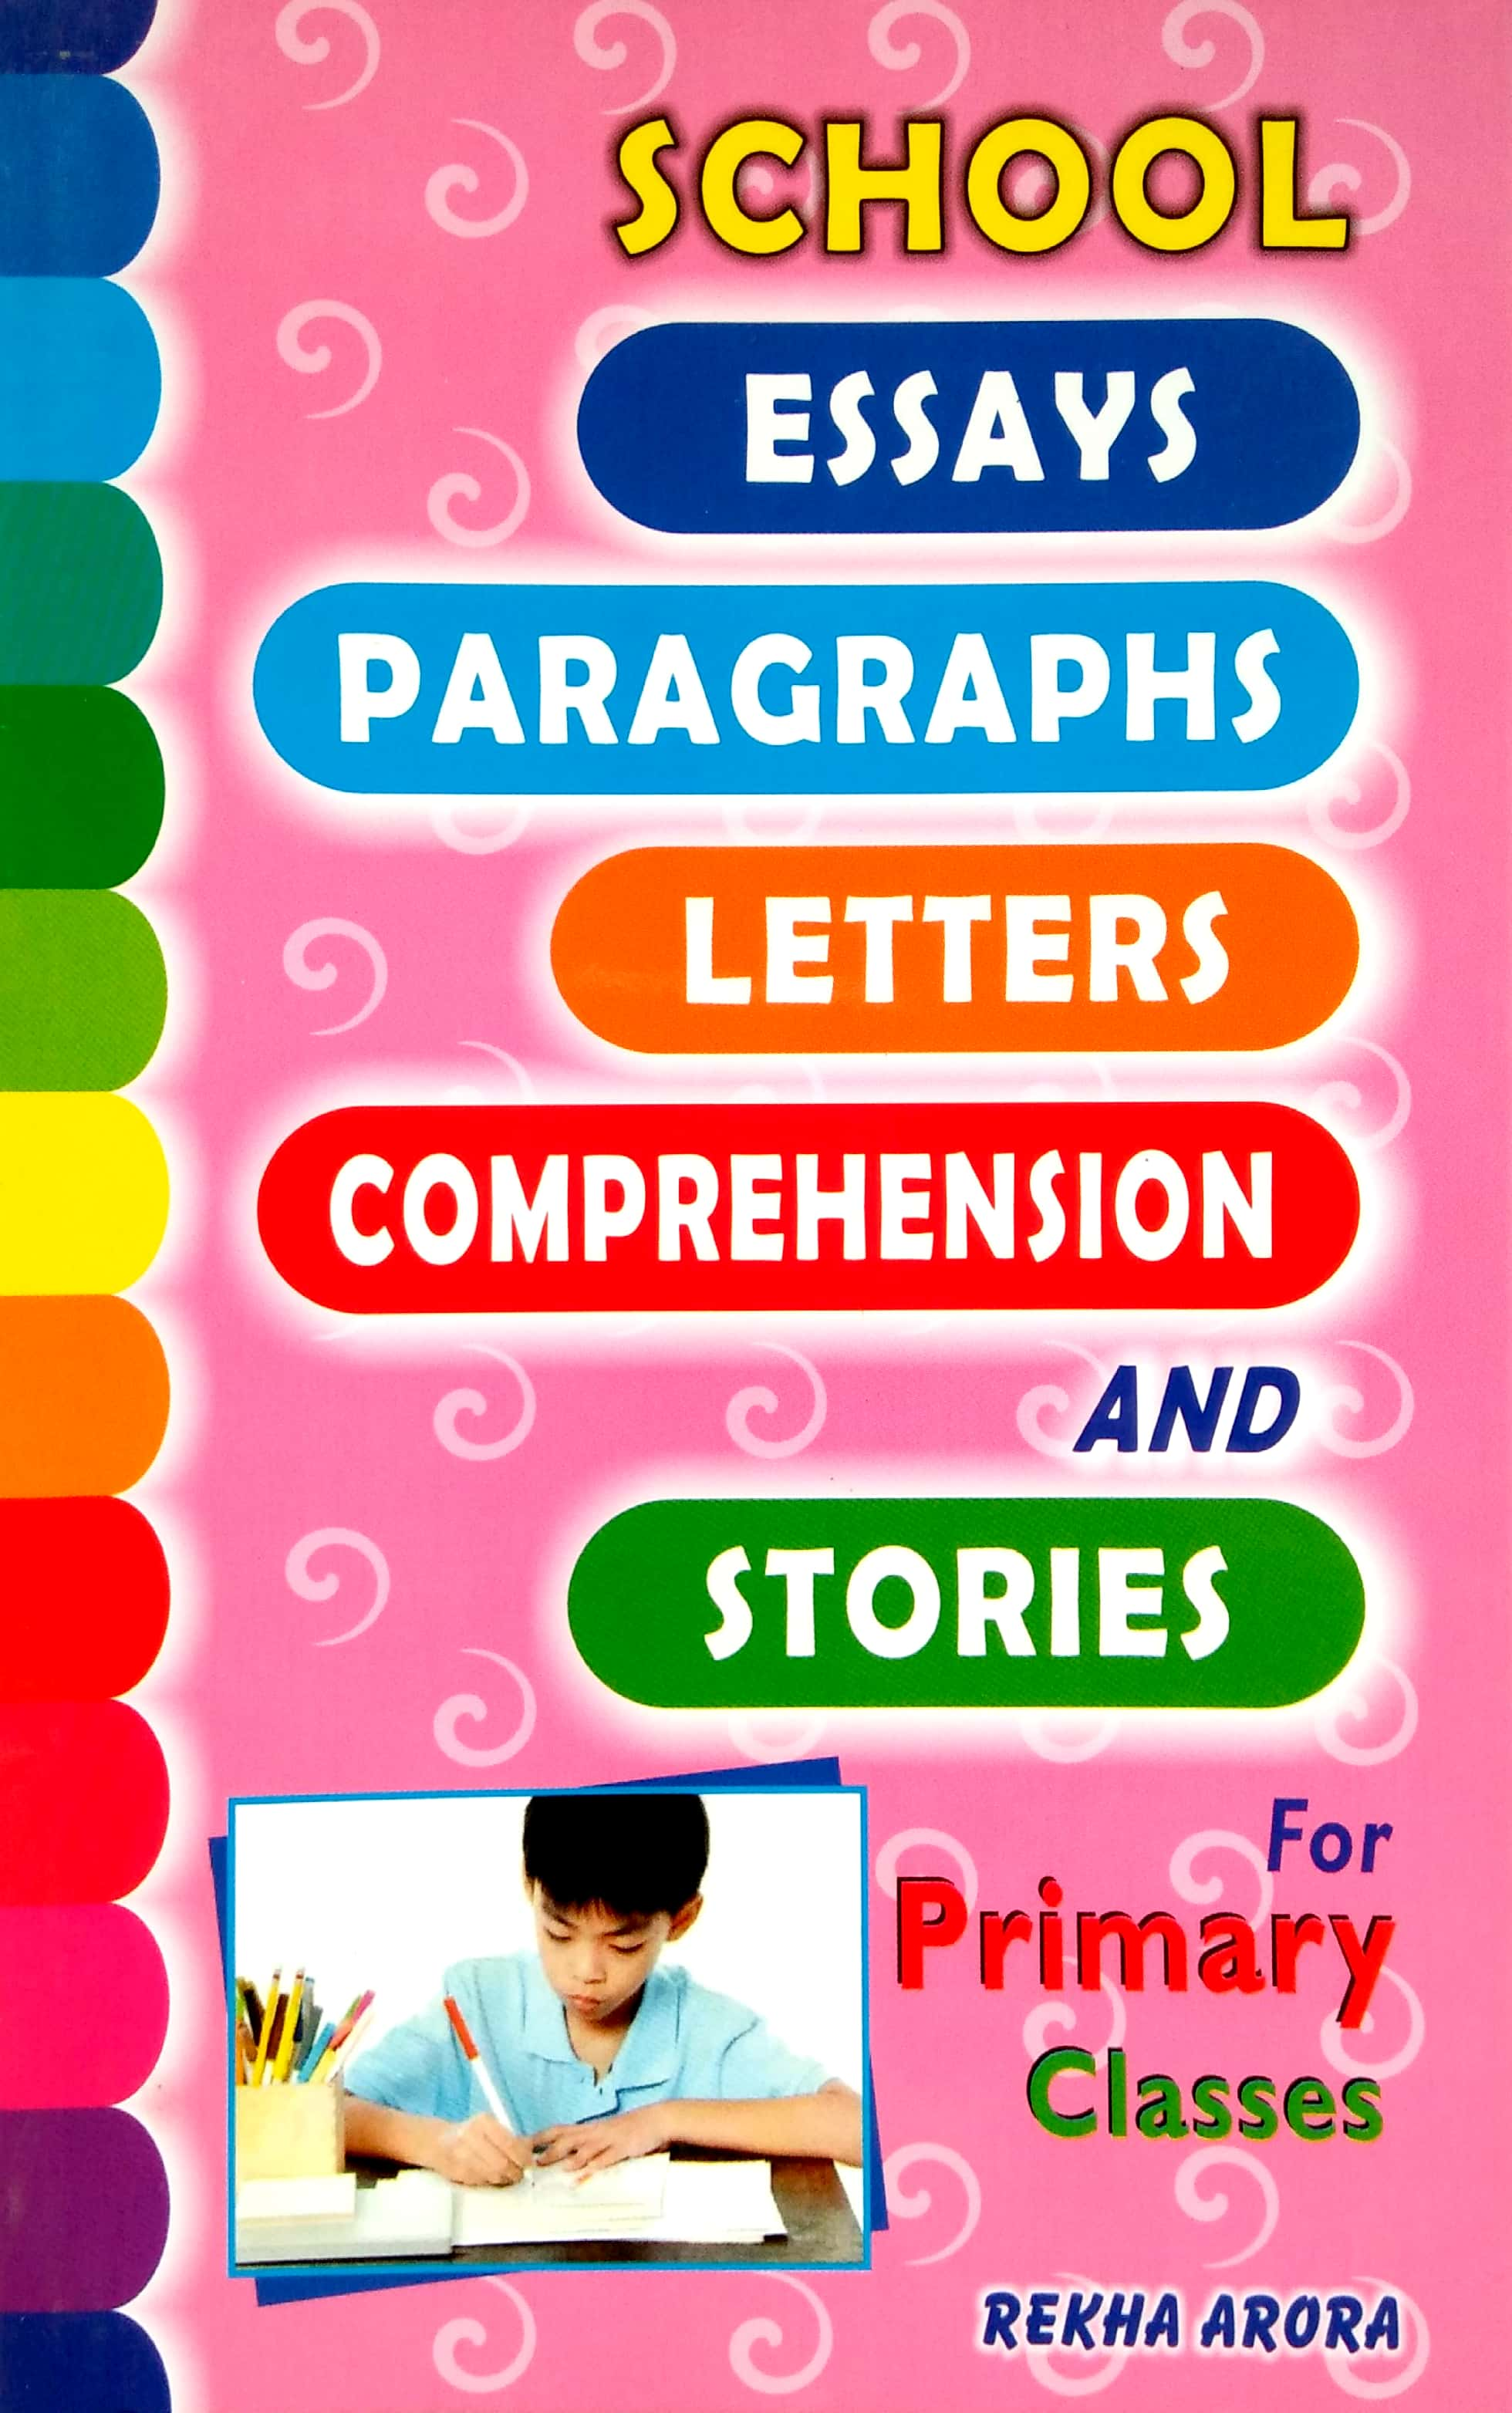 School Essays, Paragraphs, Letters, Comprehension & Stories For Primary Classes